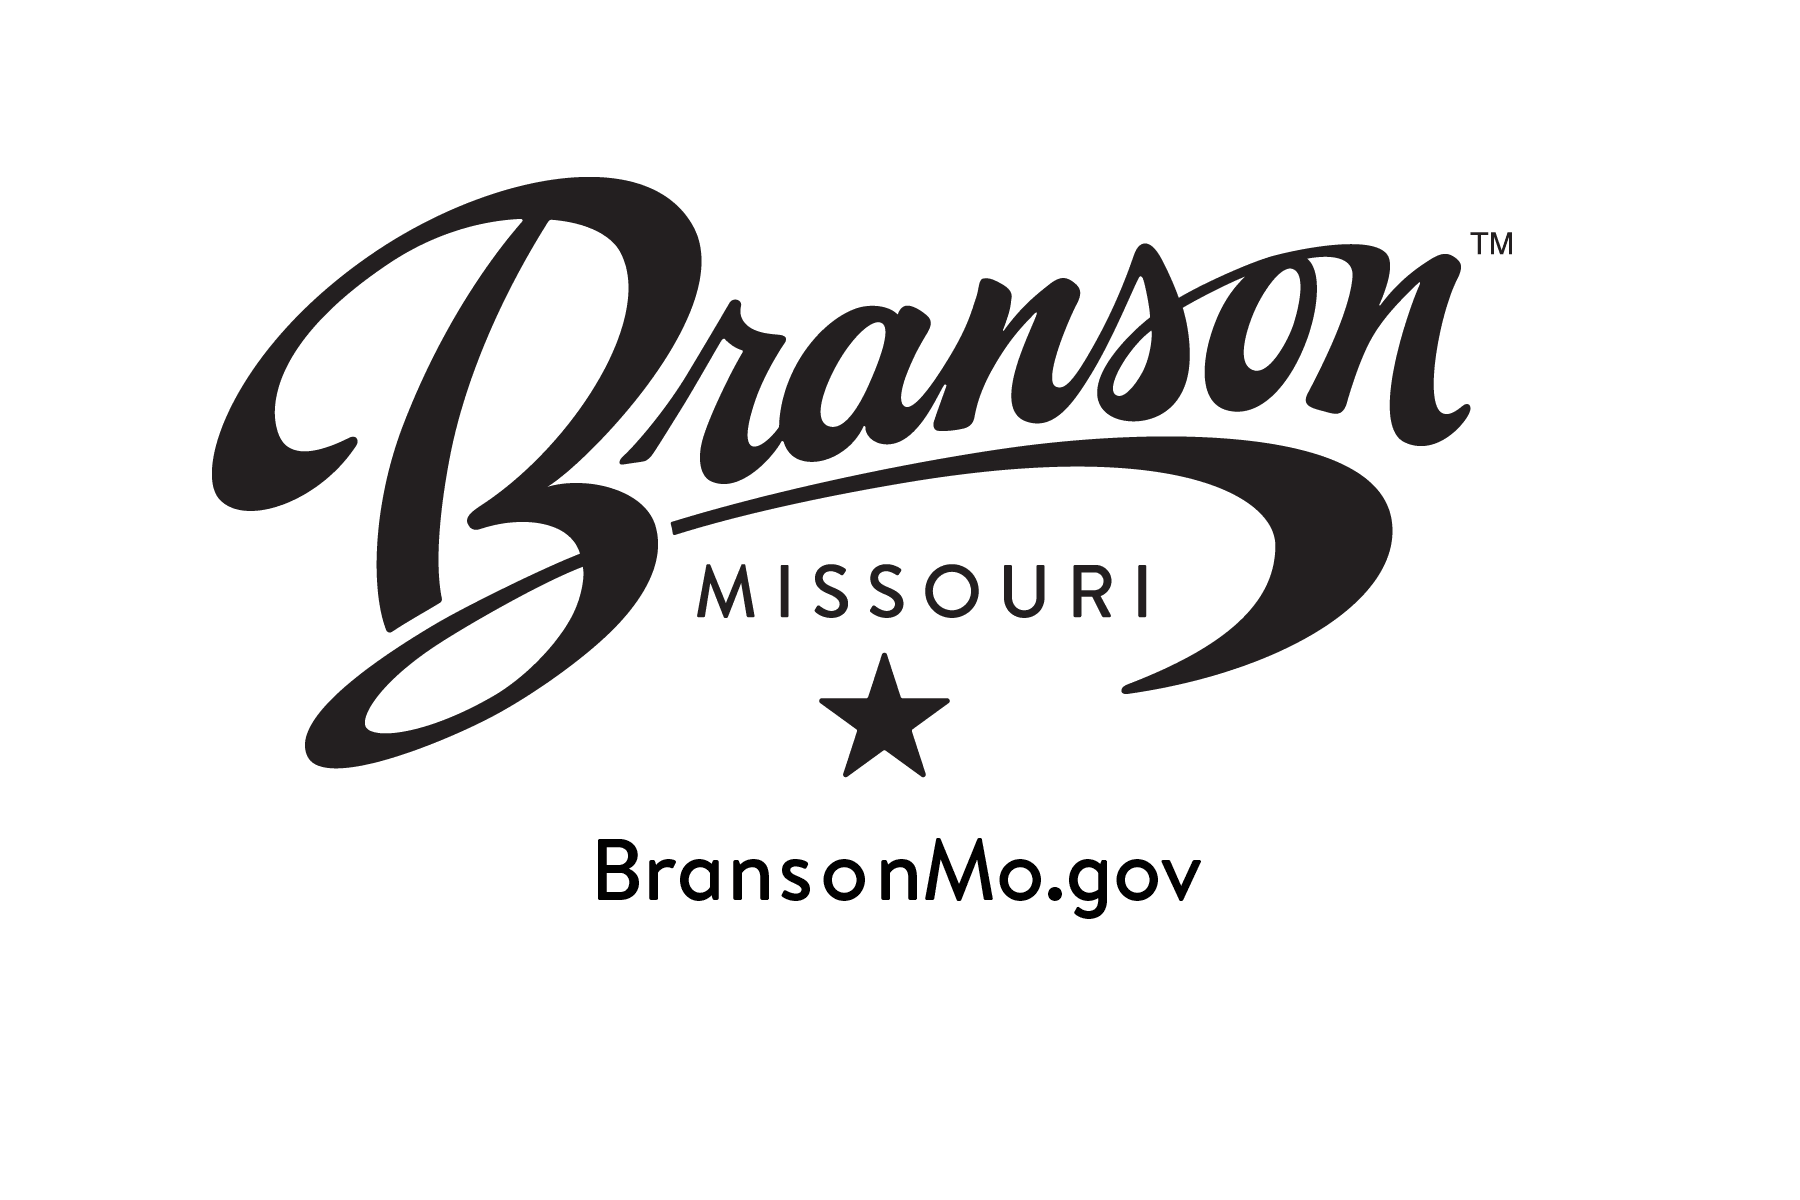 city of branson logo